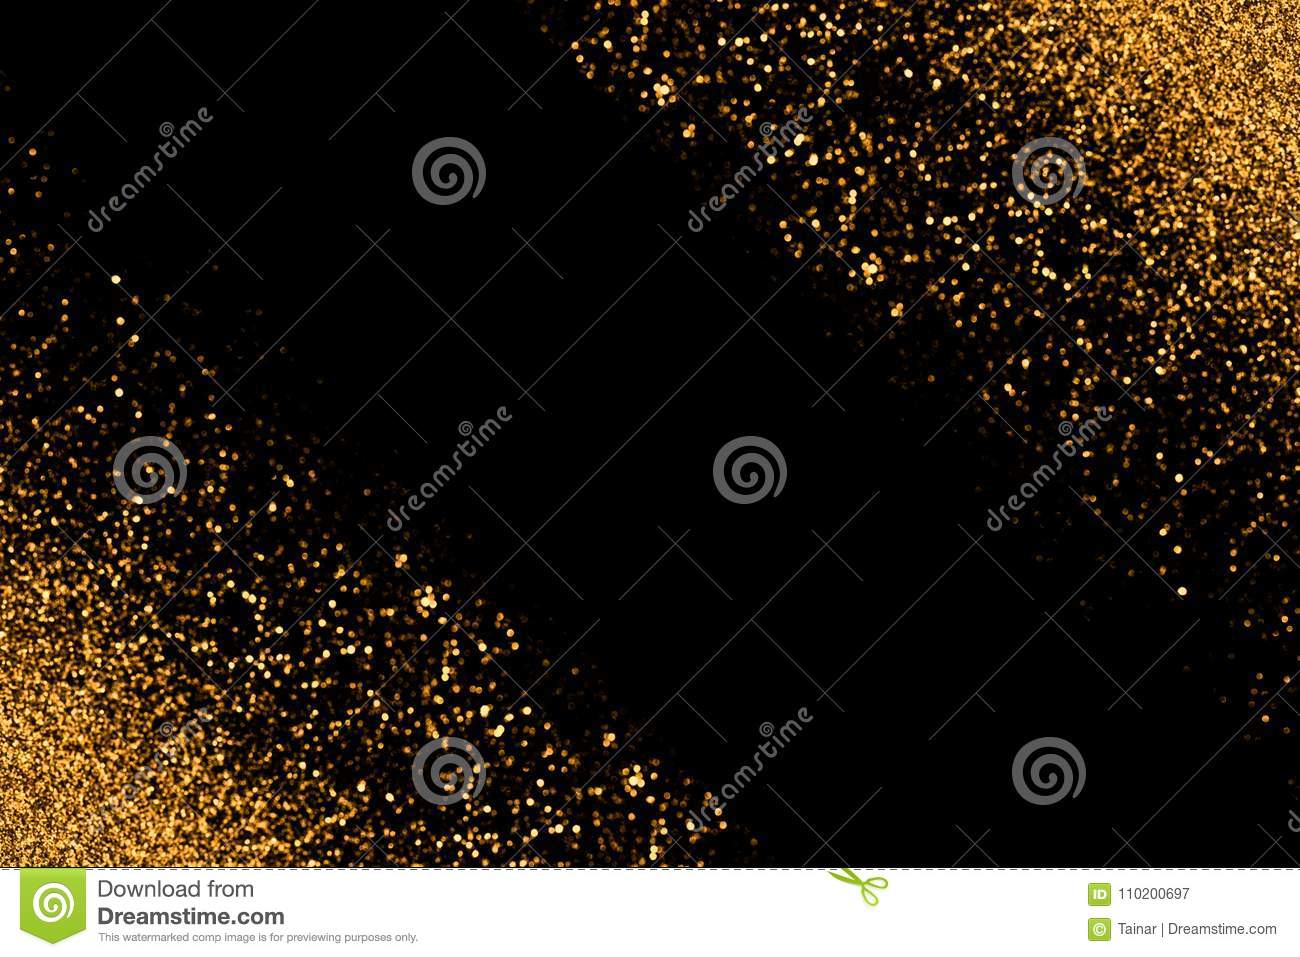 Defocused gold glitter with glowing sparks lights on a black background. Holiday greeting card